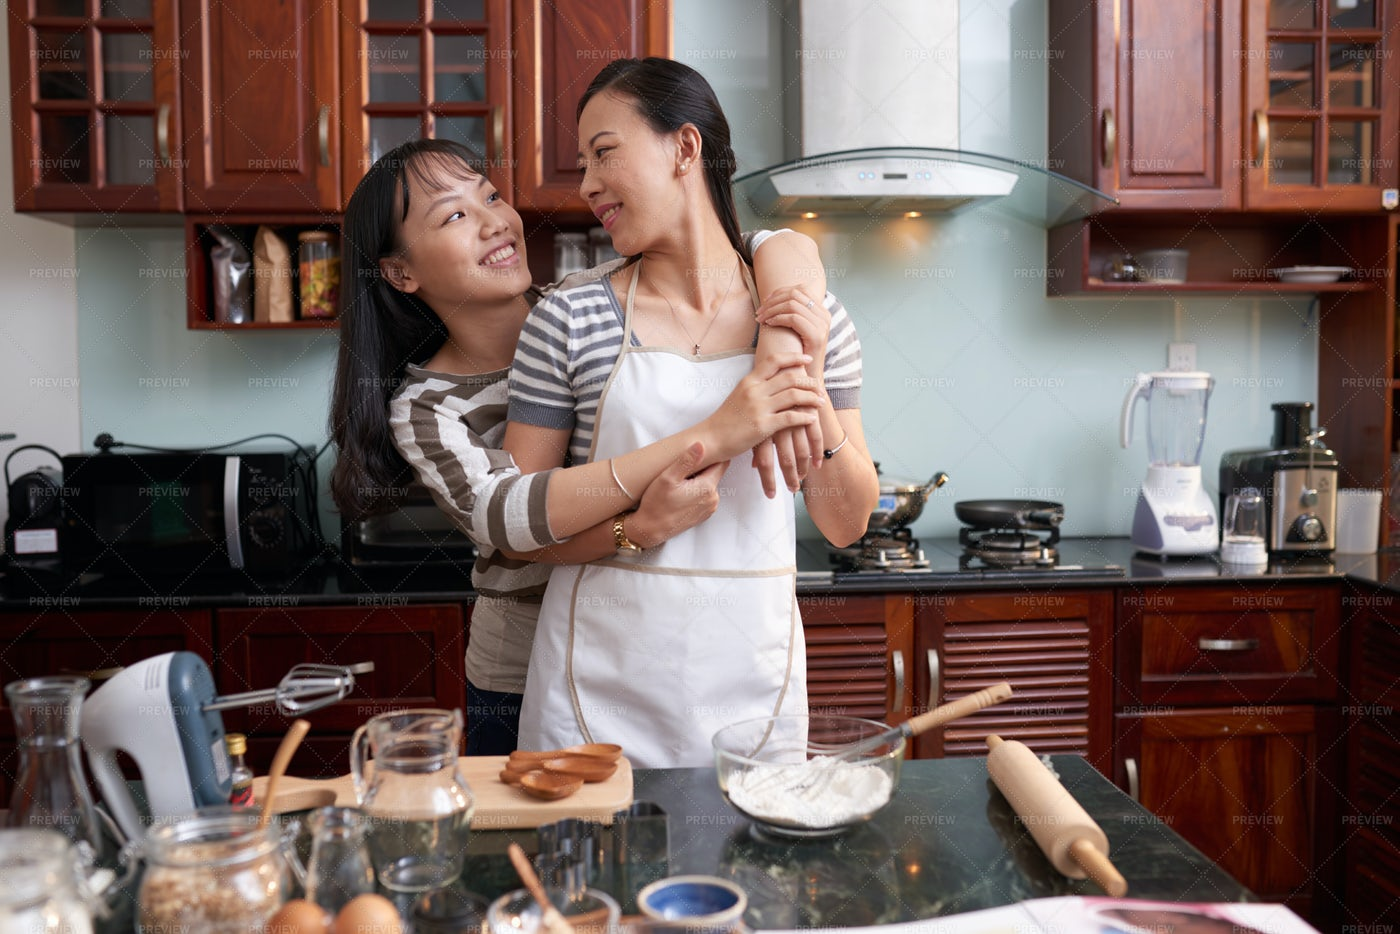 Mother And Daughter Cooking Breakfast: Stock Photos